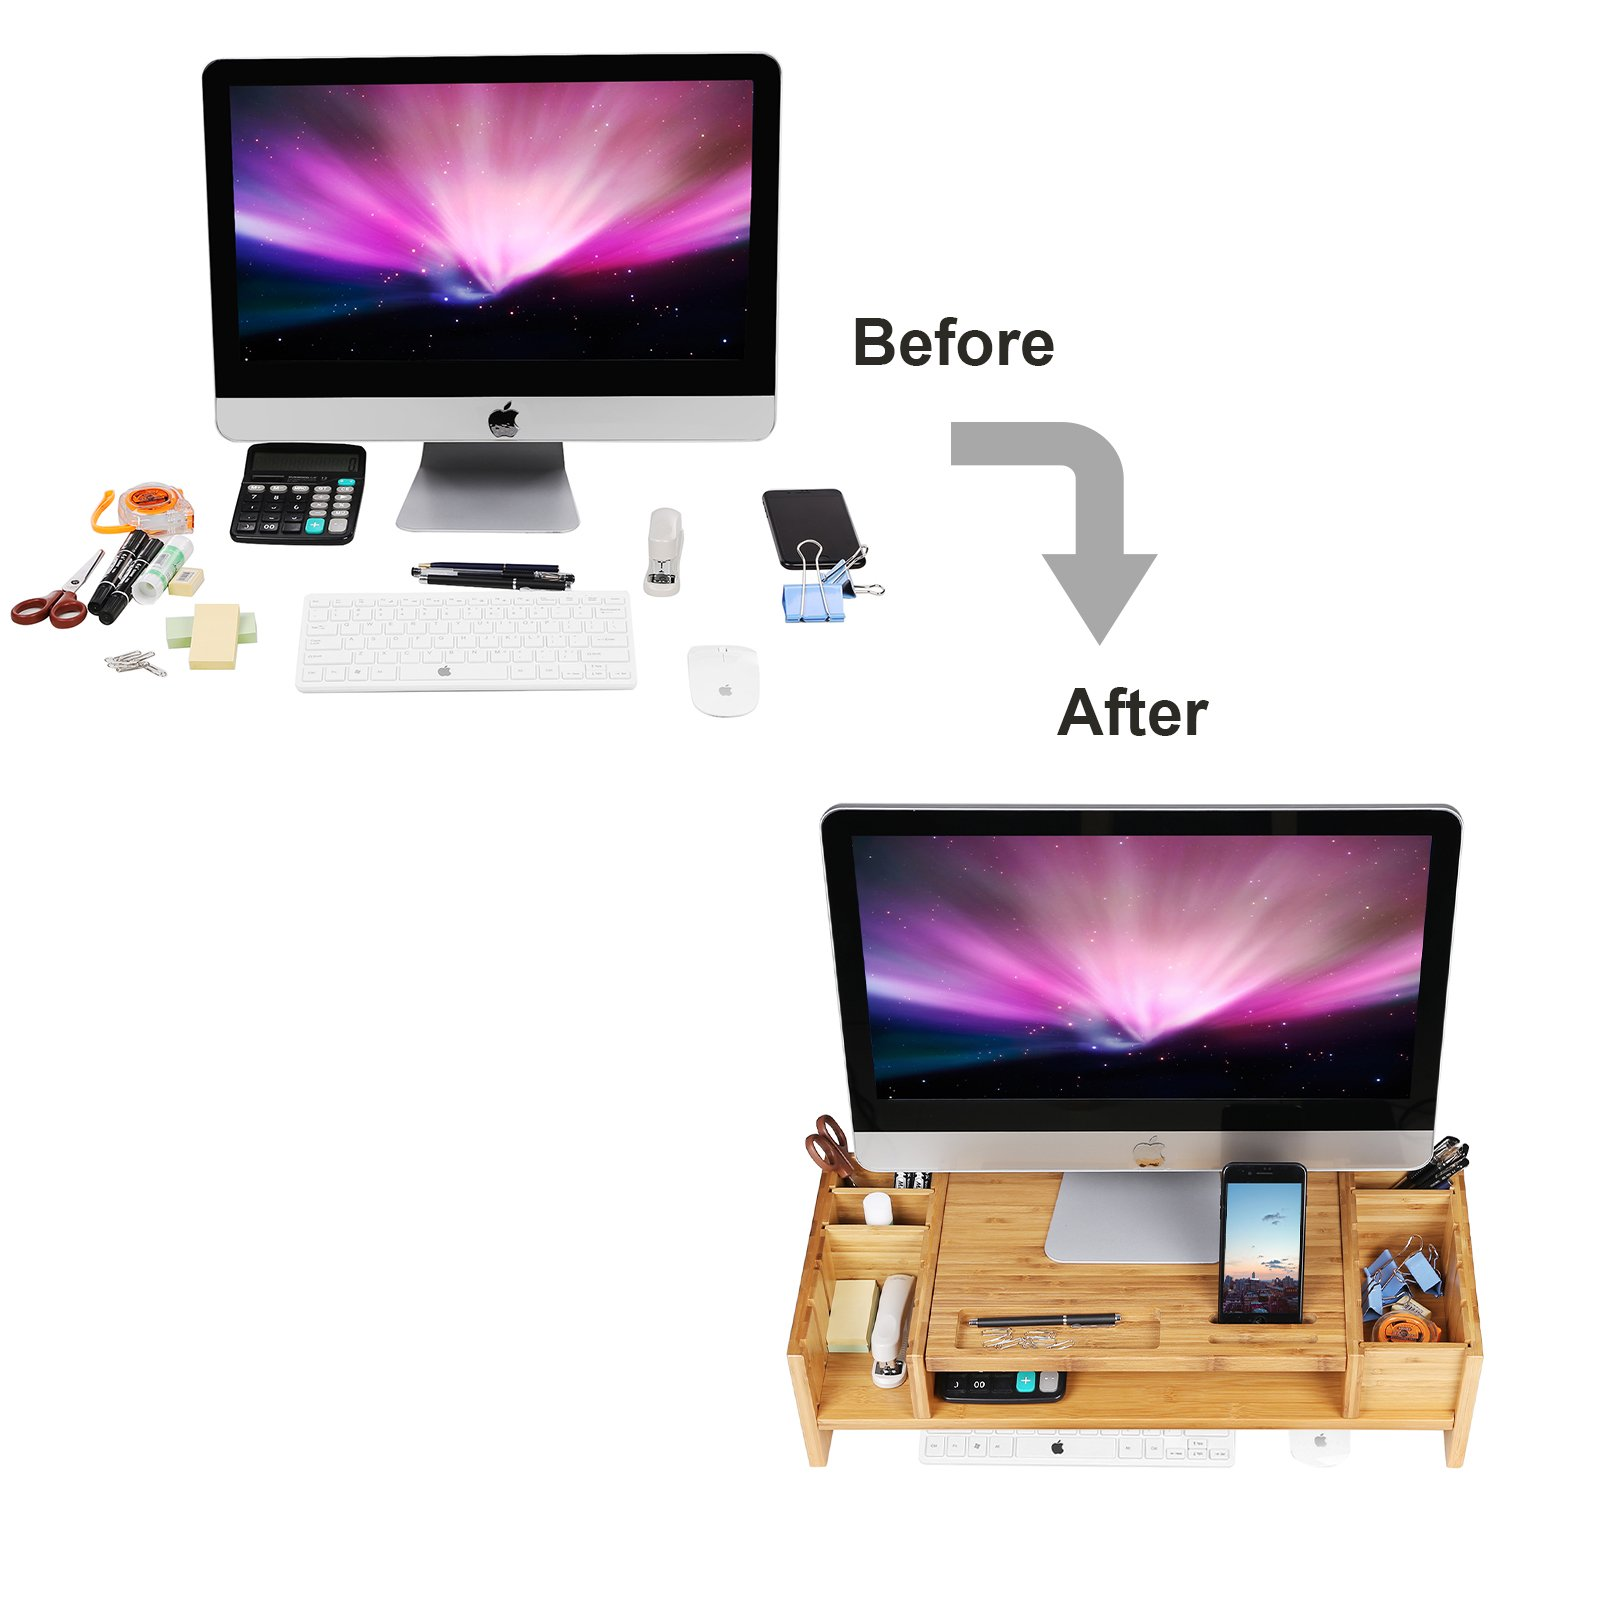 SONGMICS Bamboo 2-Tier Monitor Stand Riser with Adjustable Storage Organizer Laptop Cellphone TV Printer Stand Patented ULLD213 by SONGMICS (Image #6)